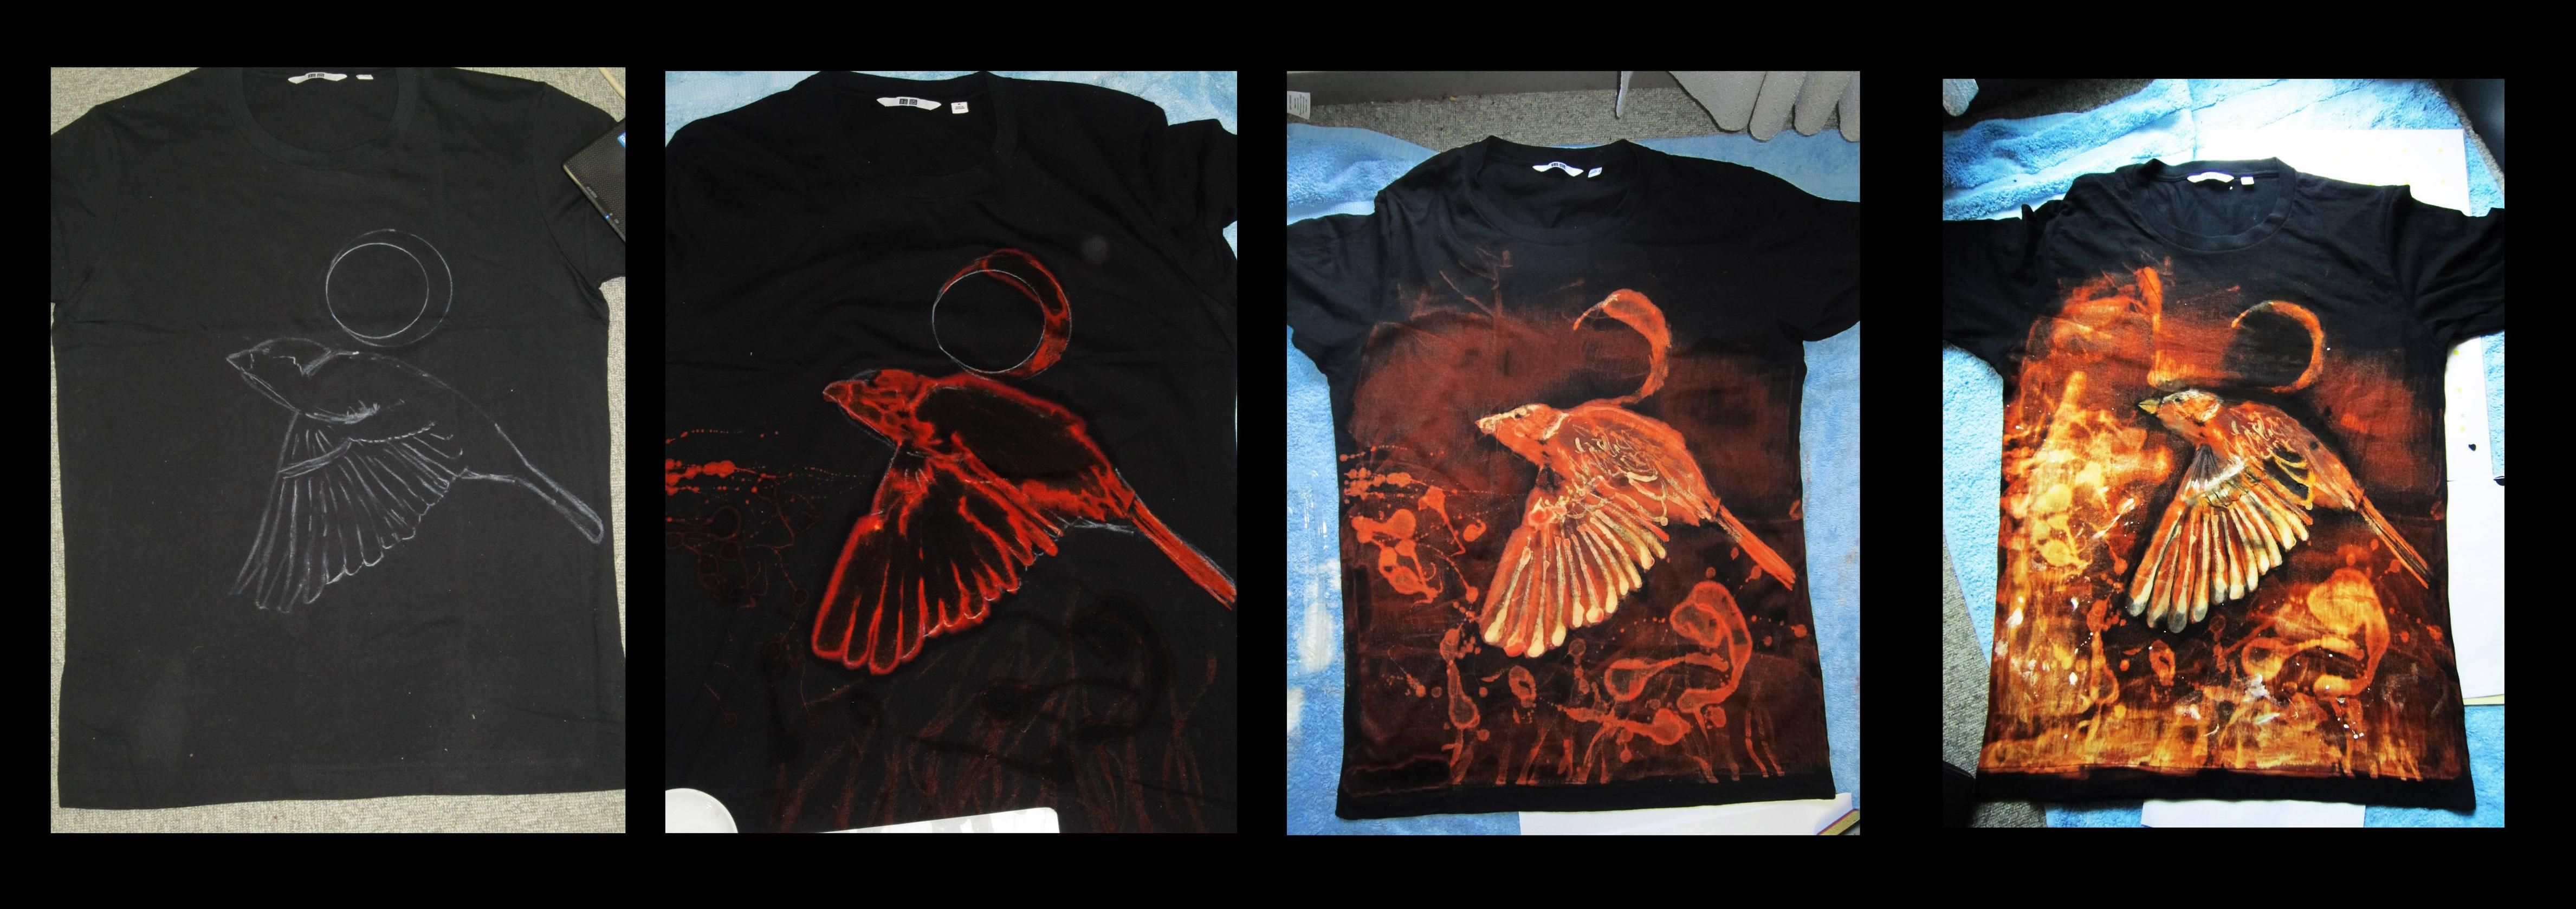 Shirt Design Made With Bleach And Ink I Want To Try Something Like This Bleach Art Art Shirts Diy Prints